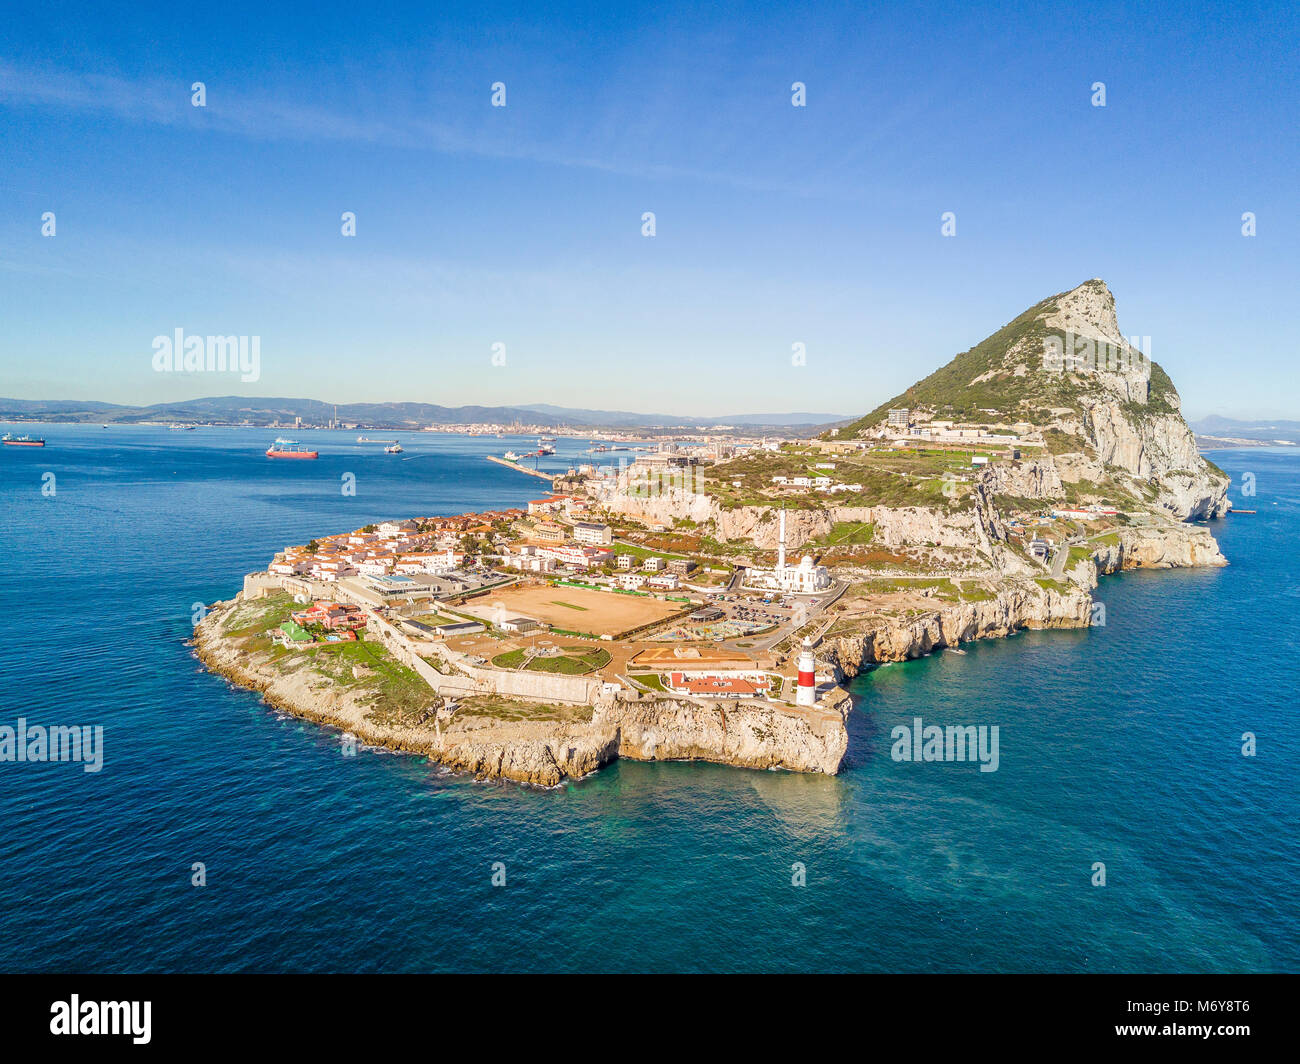 Famous Gibraltar rock on overseas british territory, Gibraltar, Iberian Peninsula, Europe - Stock Image